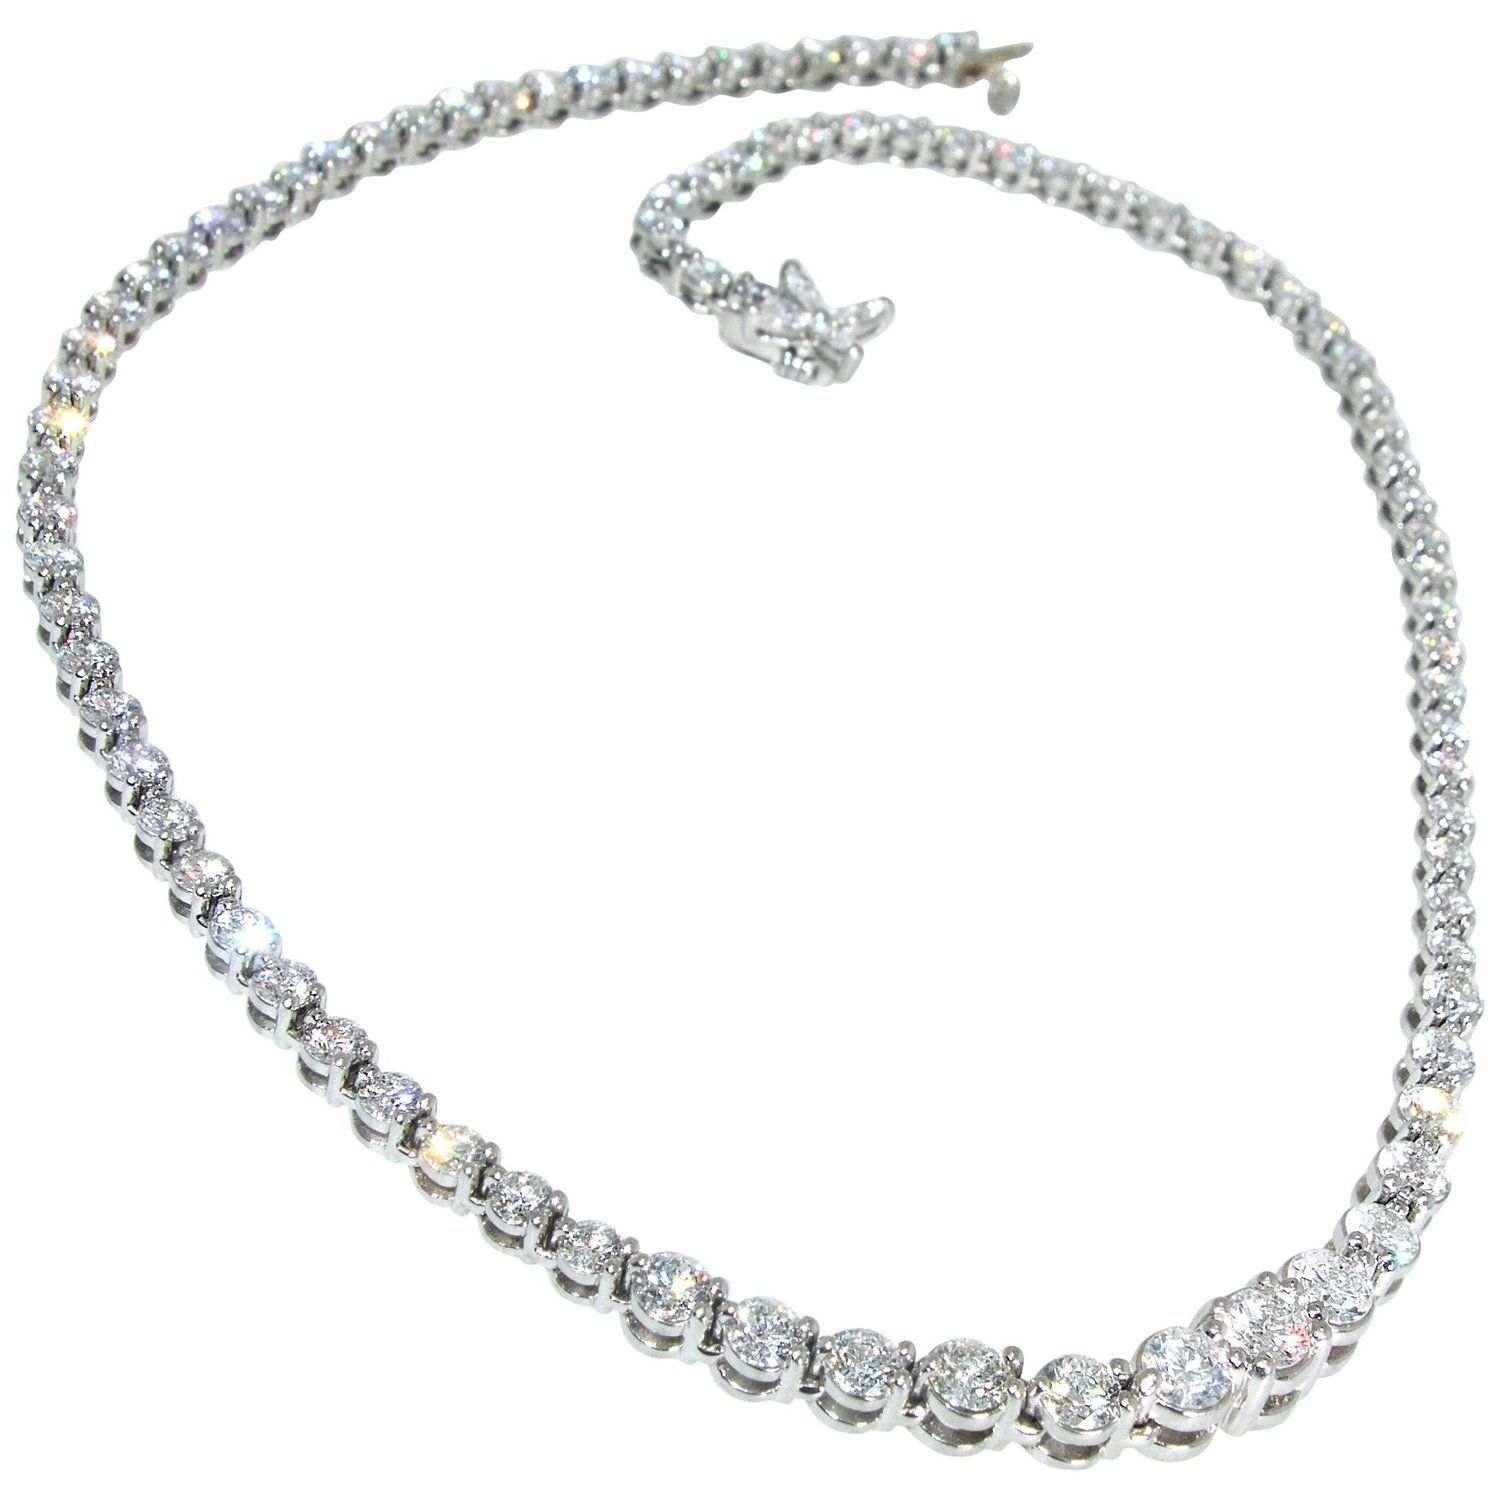 718a933d6 Tiffany and Co. Diamond Riviere Necklace | My 1stdibs Favorites ...